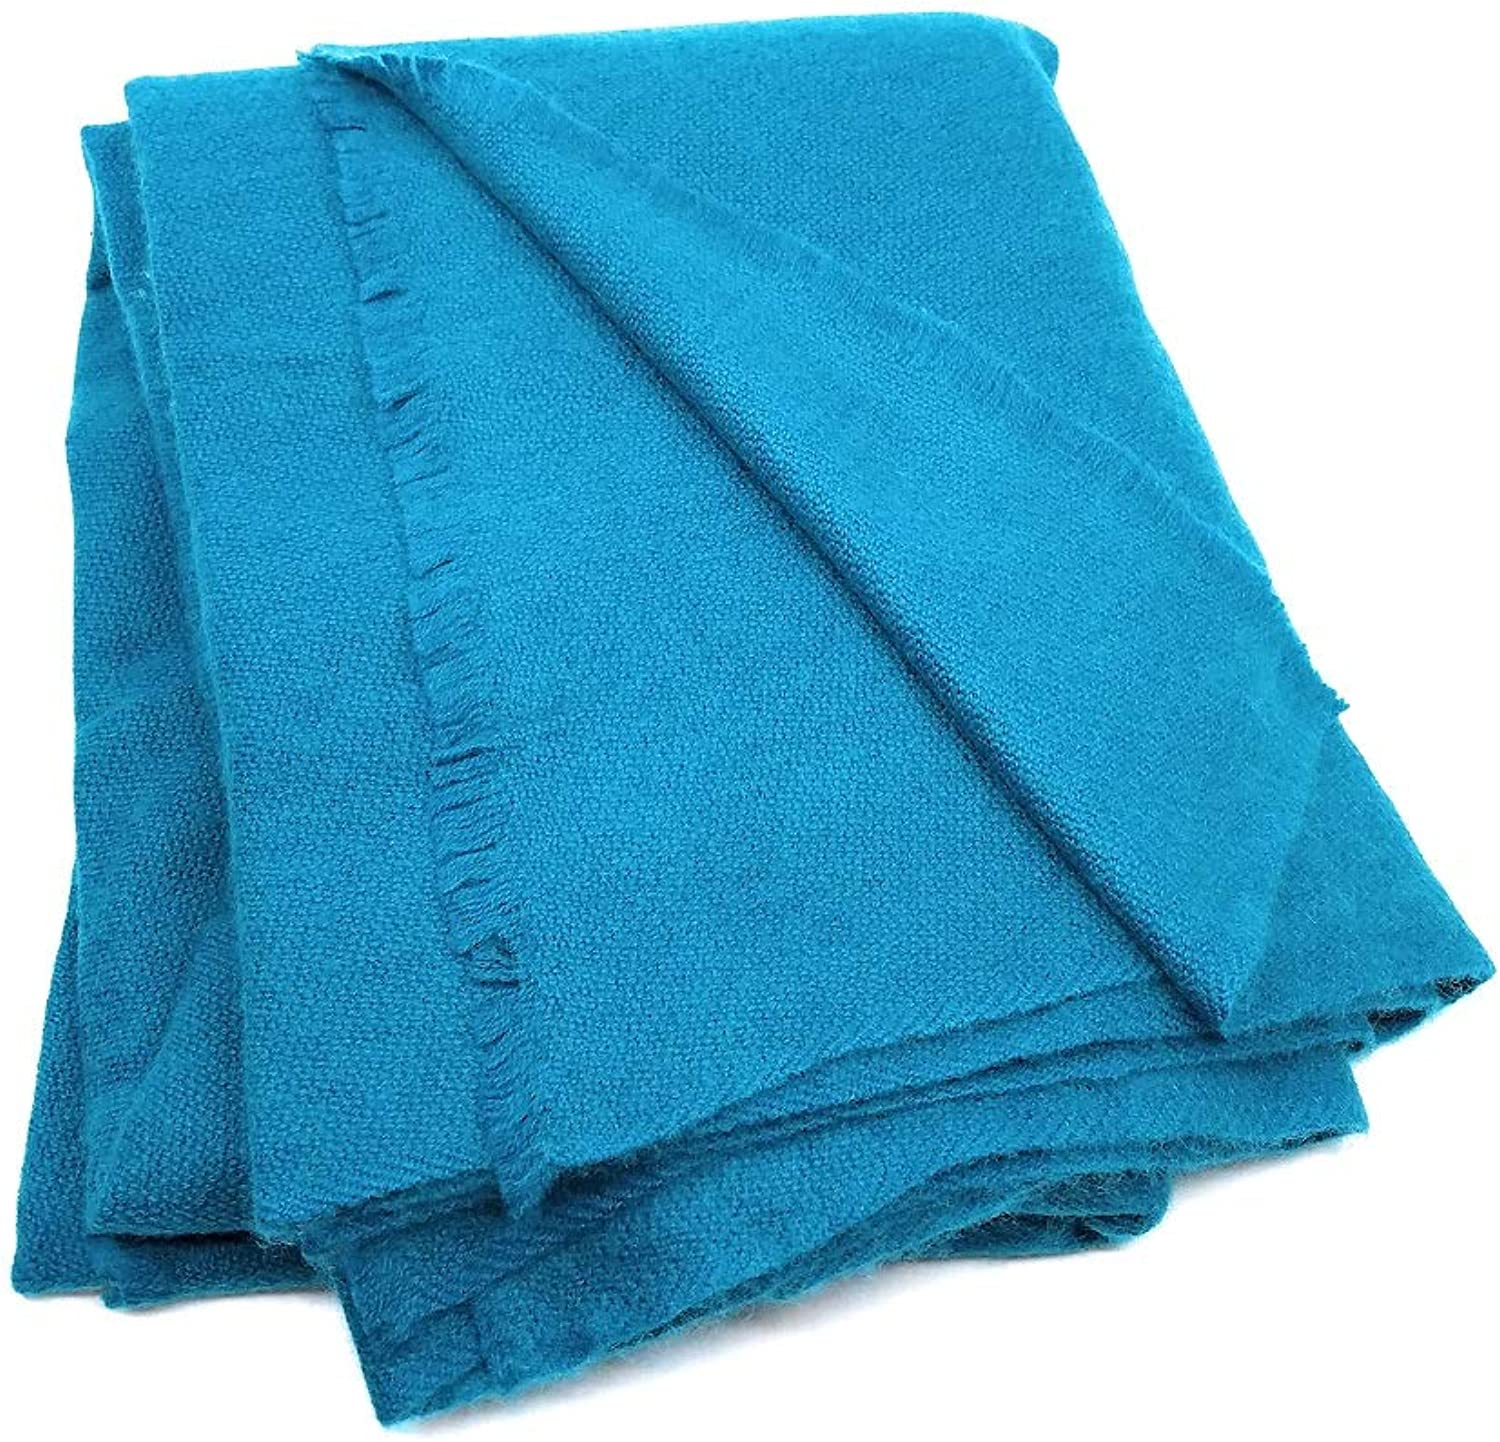 100% Soft Extra Fine Cashmere Wool Large Shawl or Wrap Natural Dyes Made in Nepal